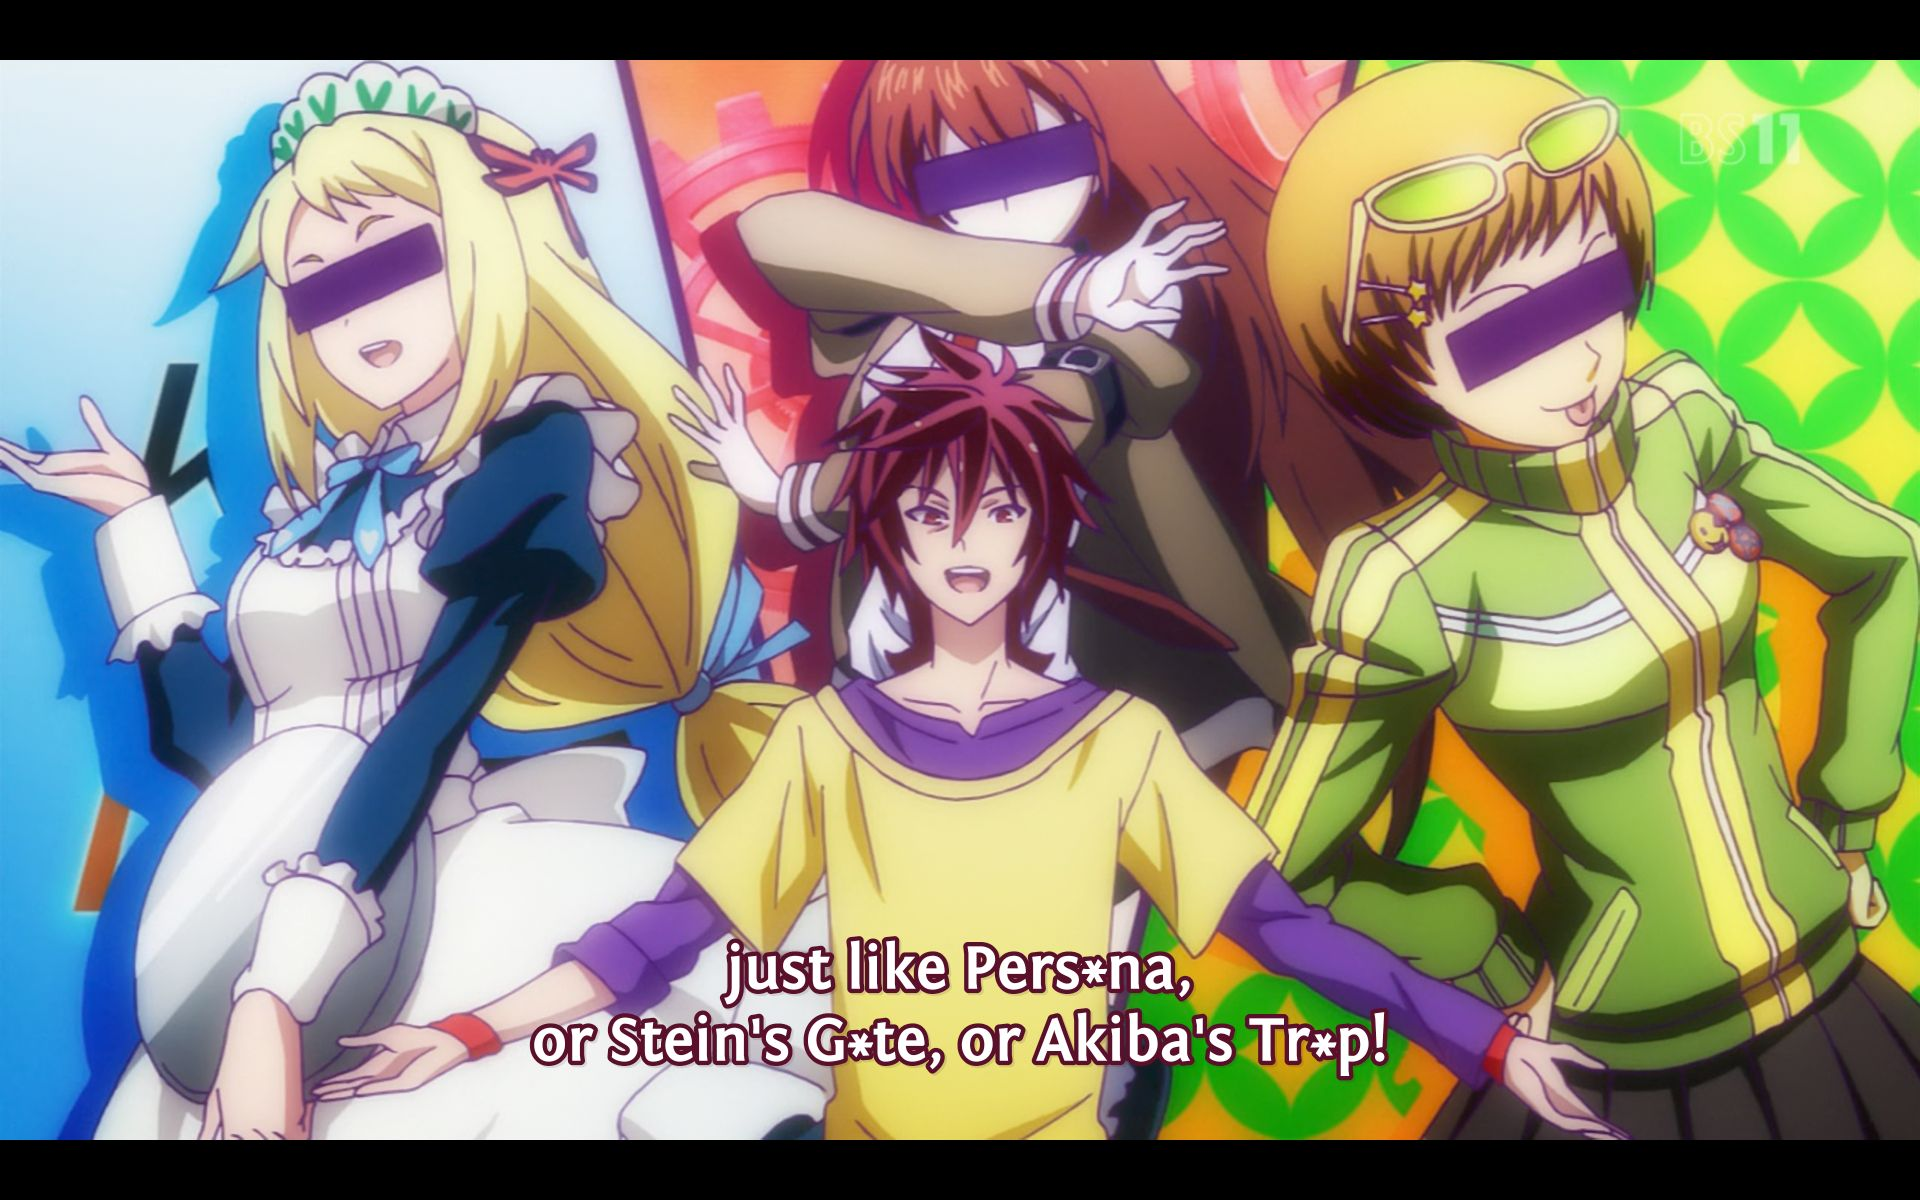 Some of the parodies in this anime.